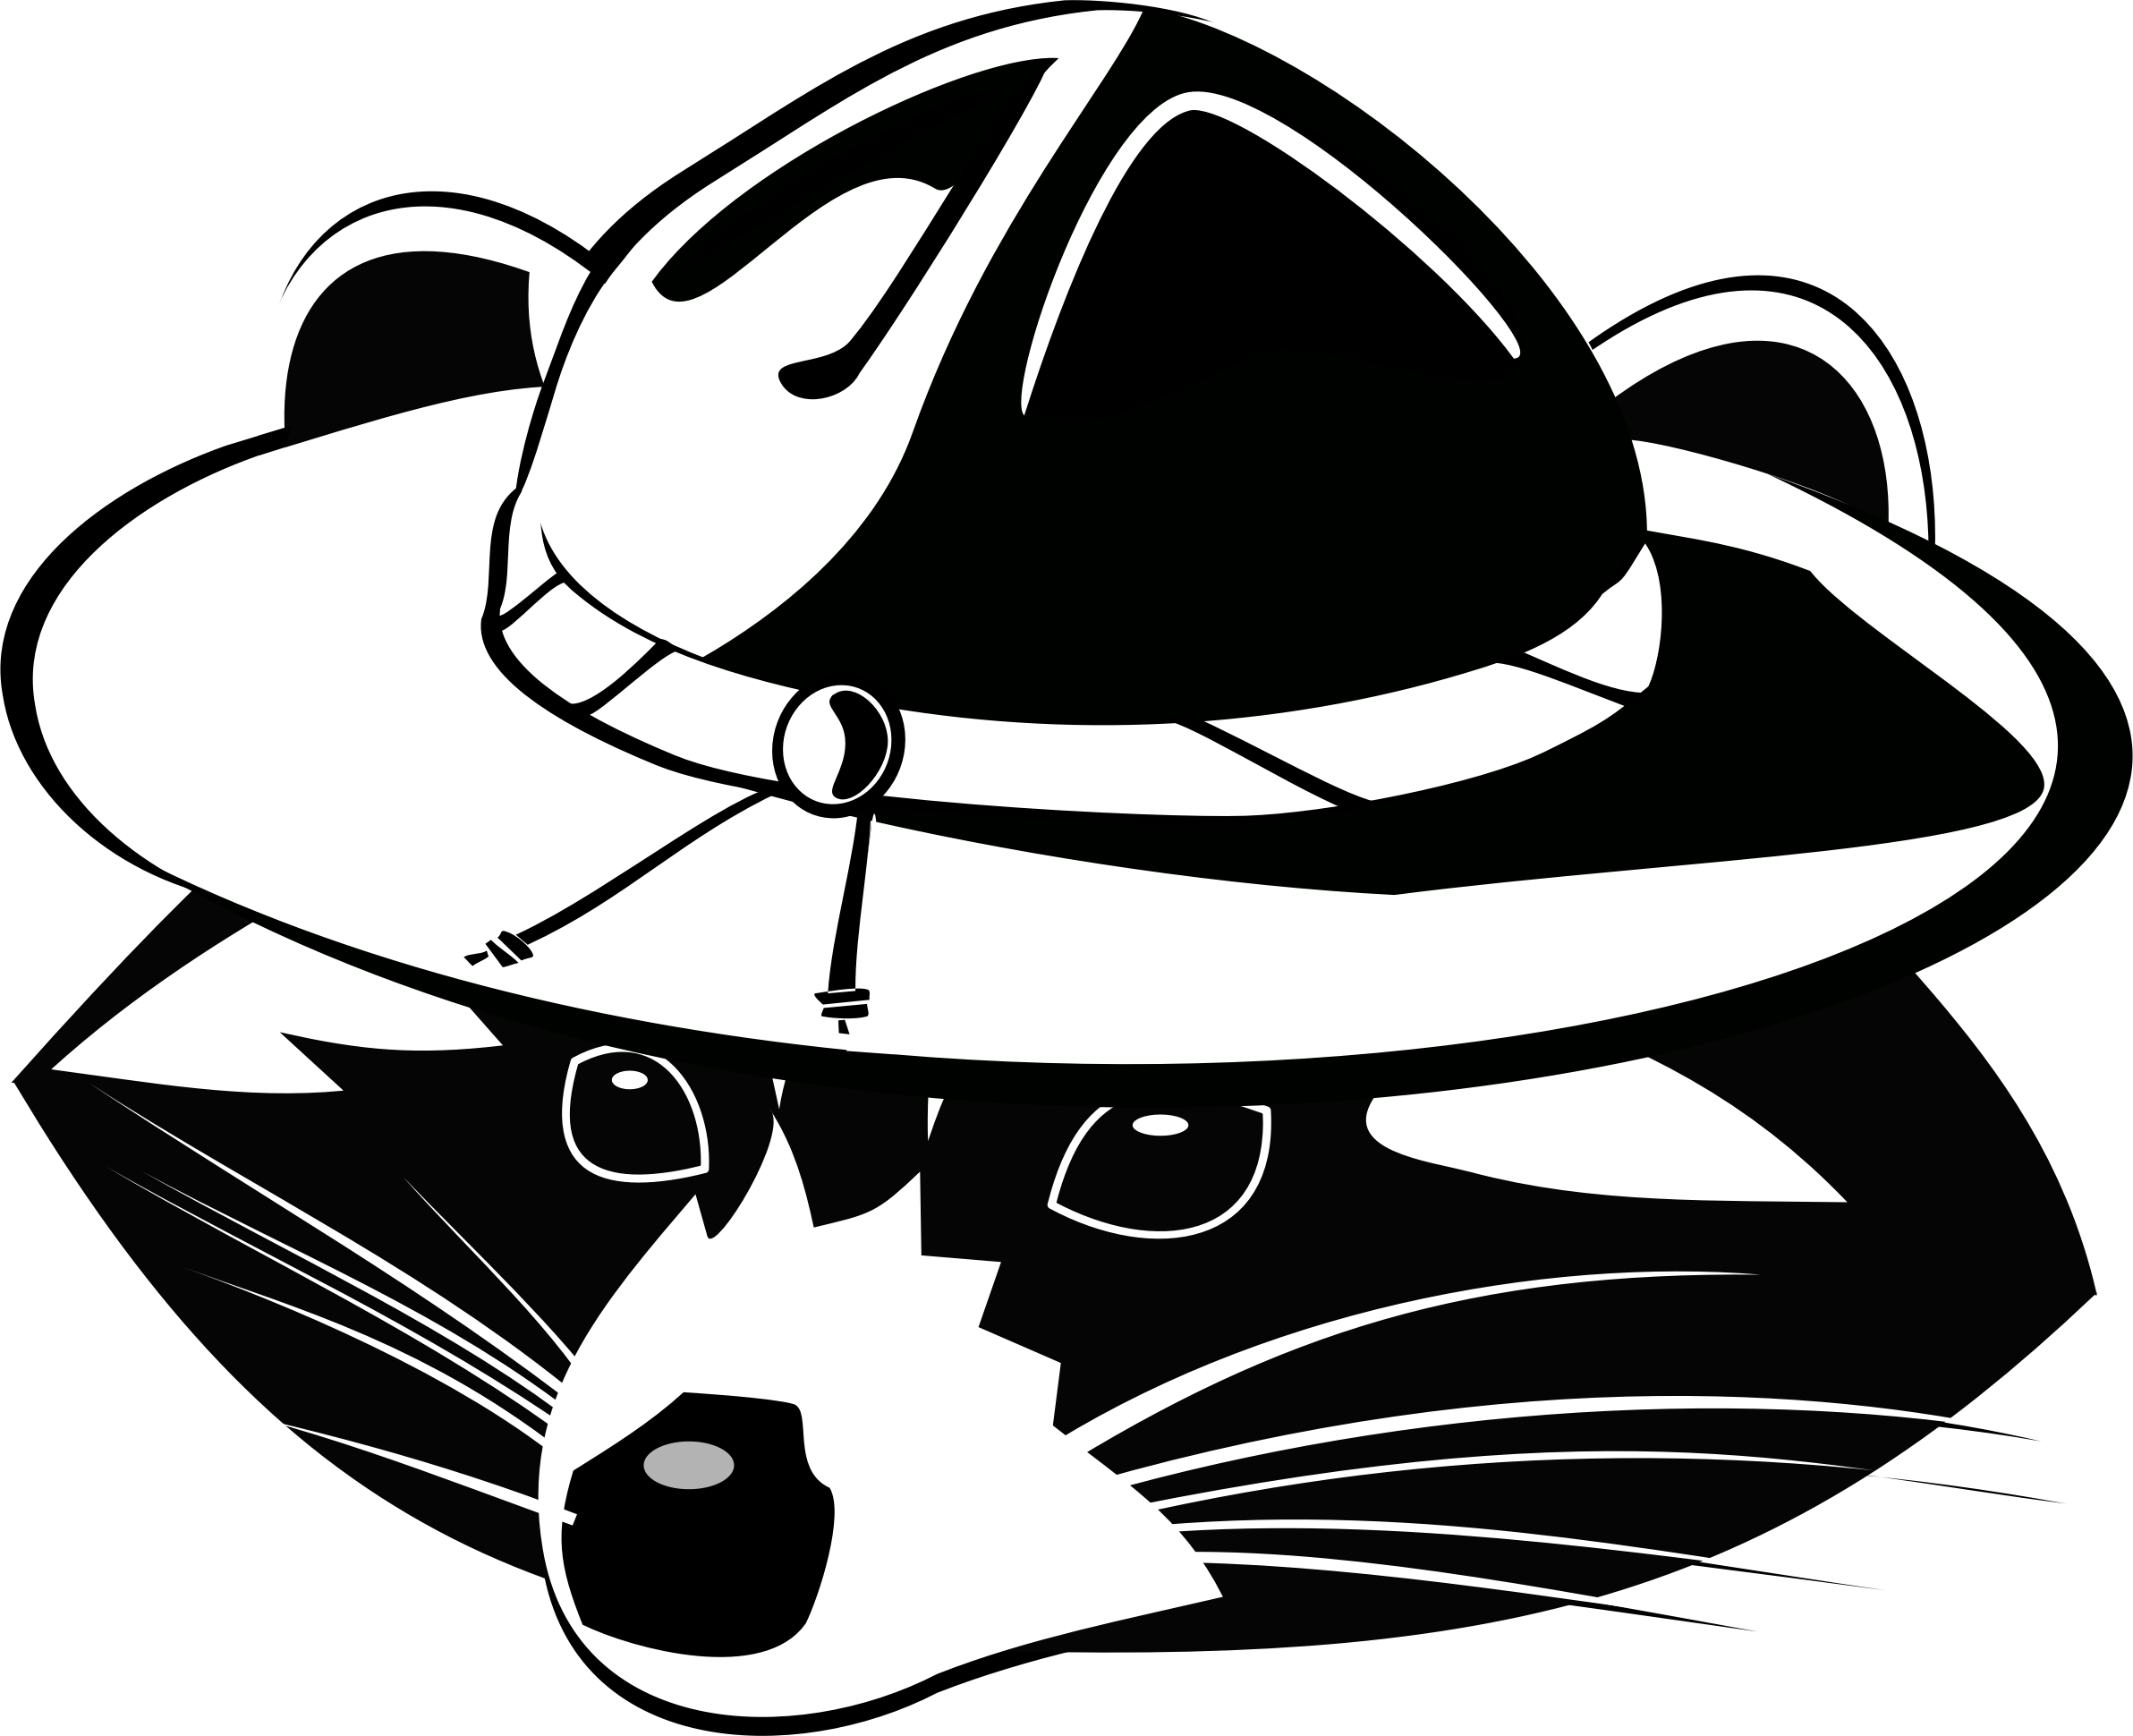 Racoon clipart svg. Raccoon scout big image